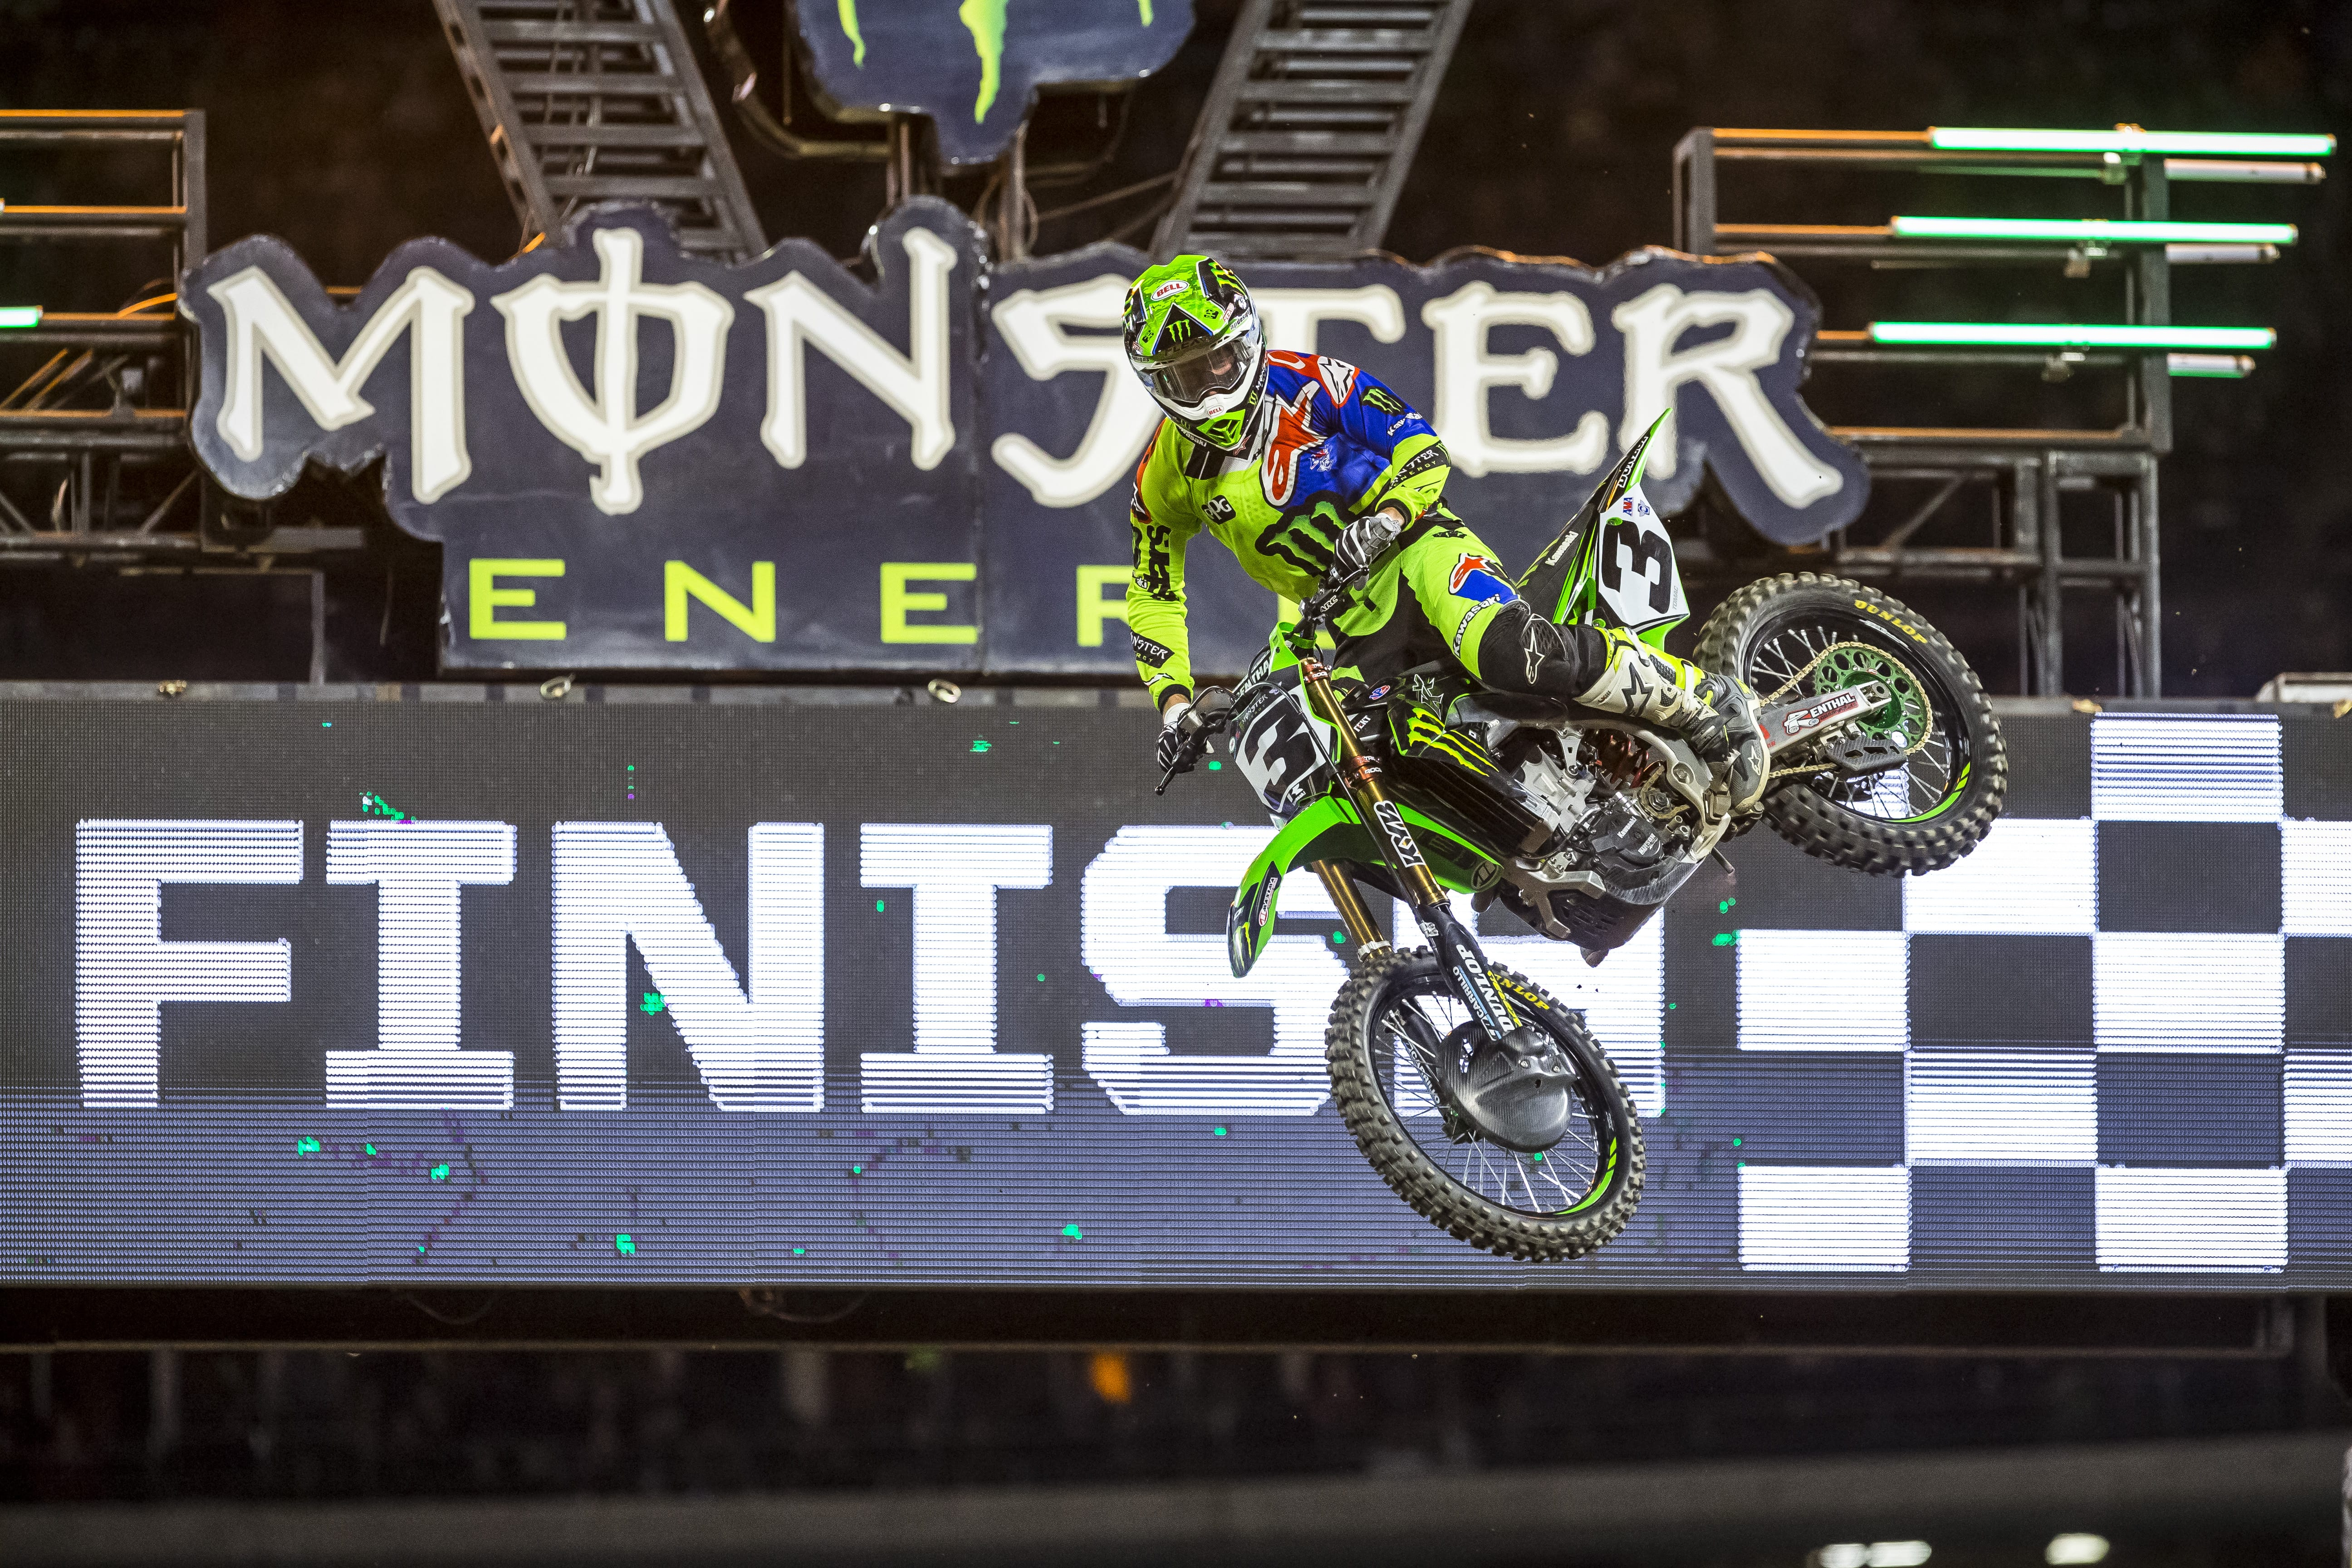 MONSTER ENERGY KAWASAKI CROWNED AT ANGEL STADIUM